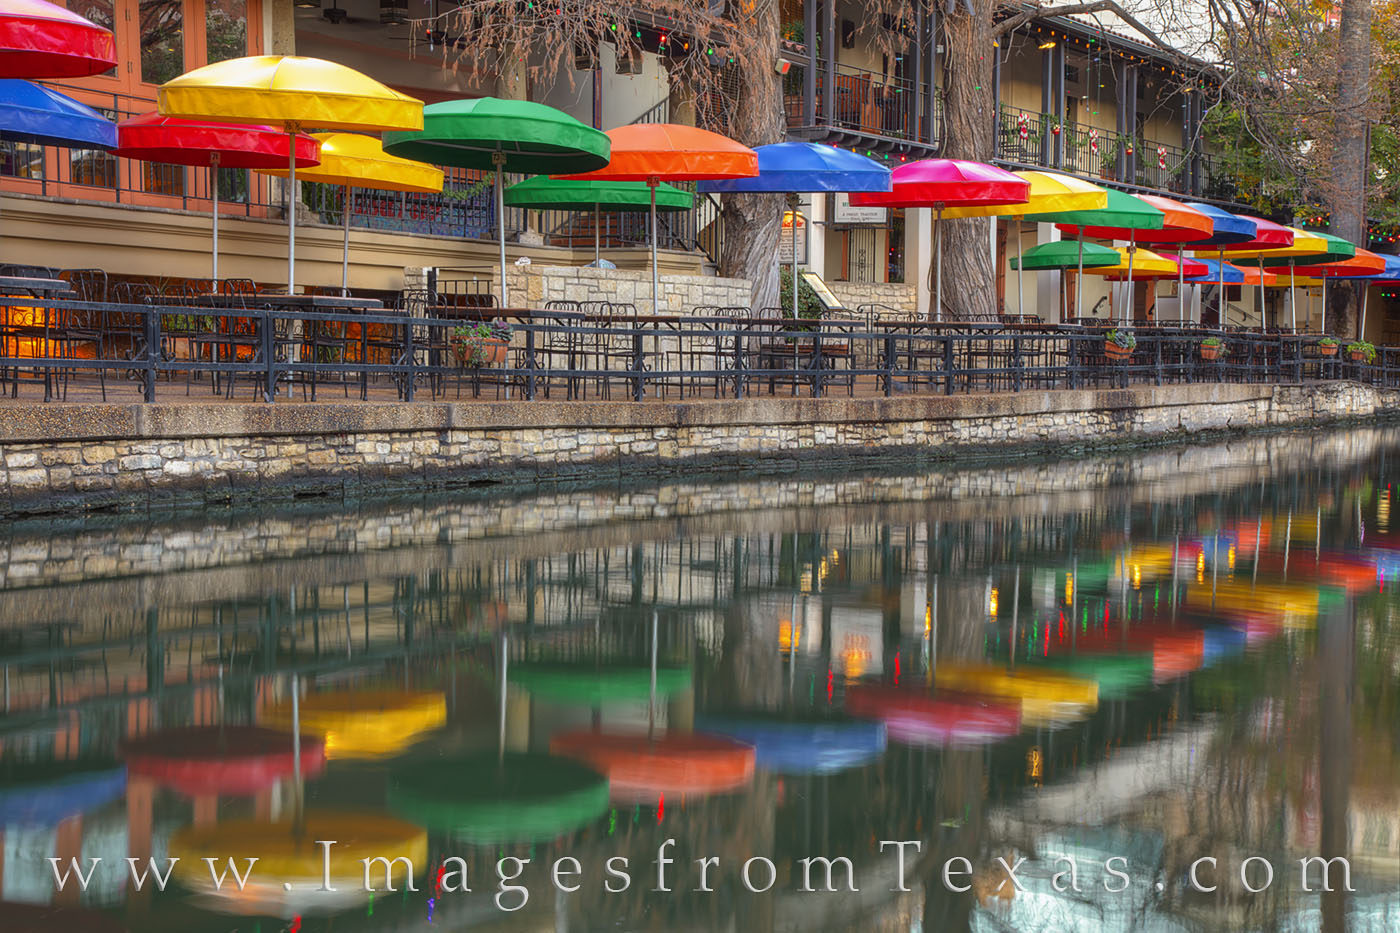 riverwalk, casa rio, colors, umbrellas, riverwalk, san antonio, san antonio river, tourism, tex-mex, mexican food, river, reflection, photo